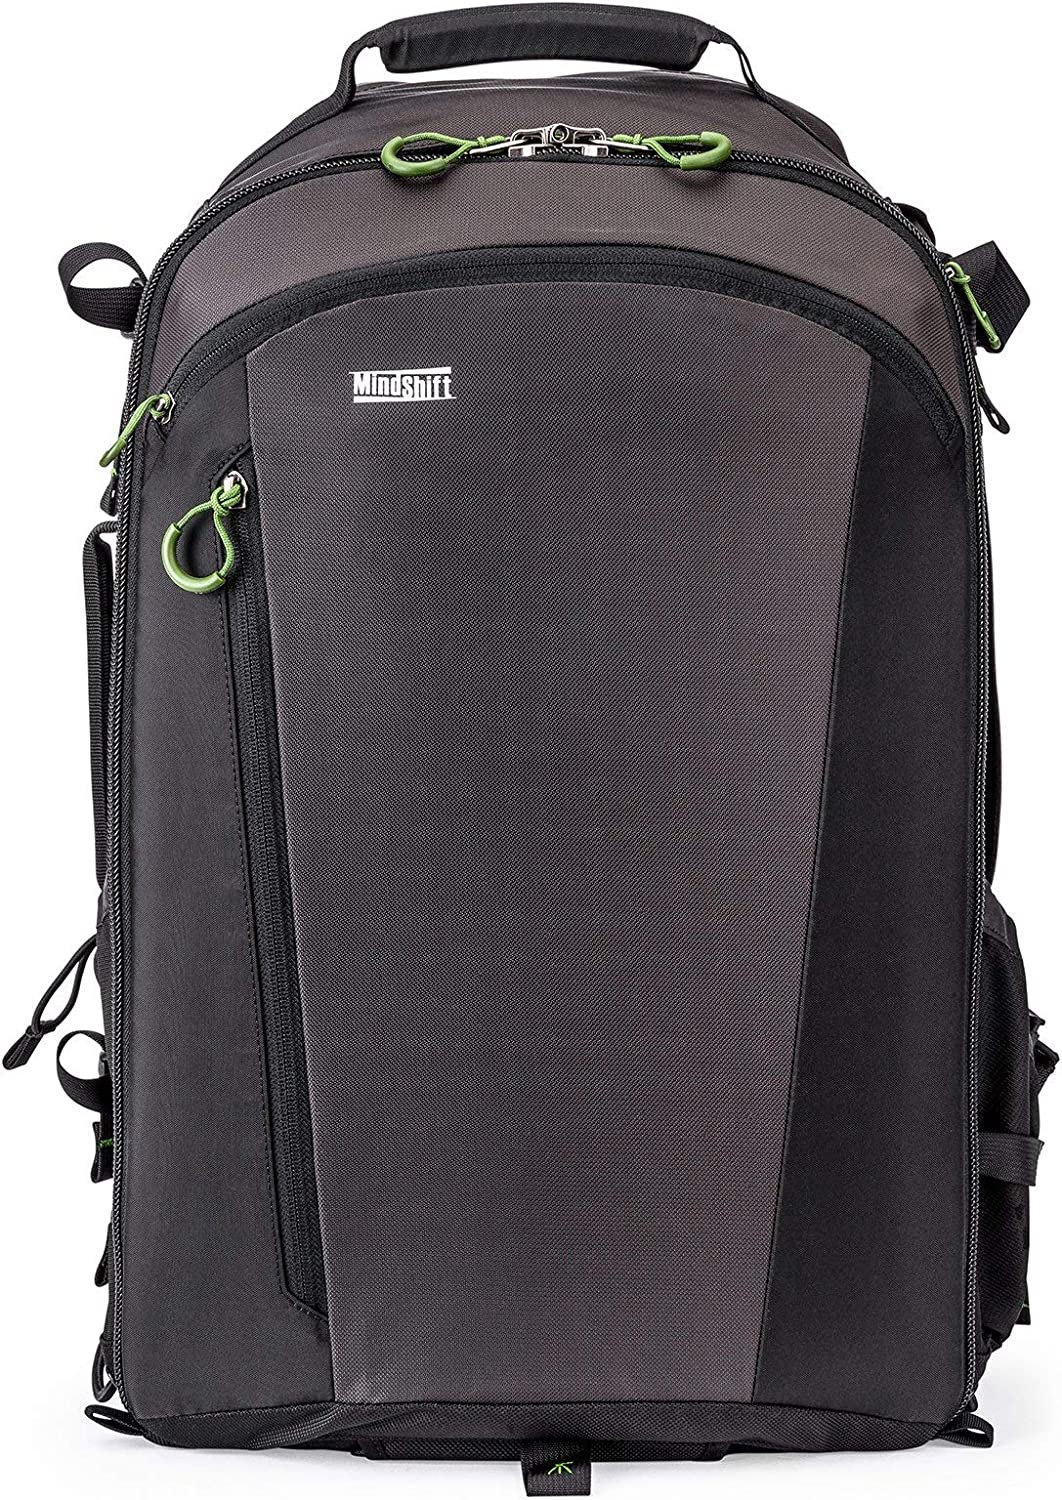 MindShift Gear 520354 FirstLight 40L Black